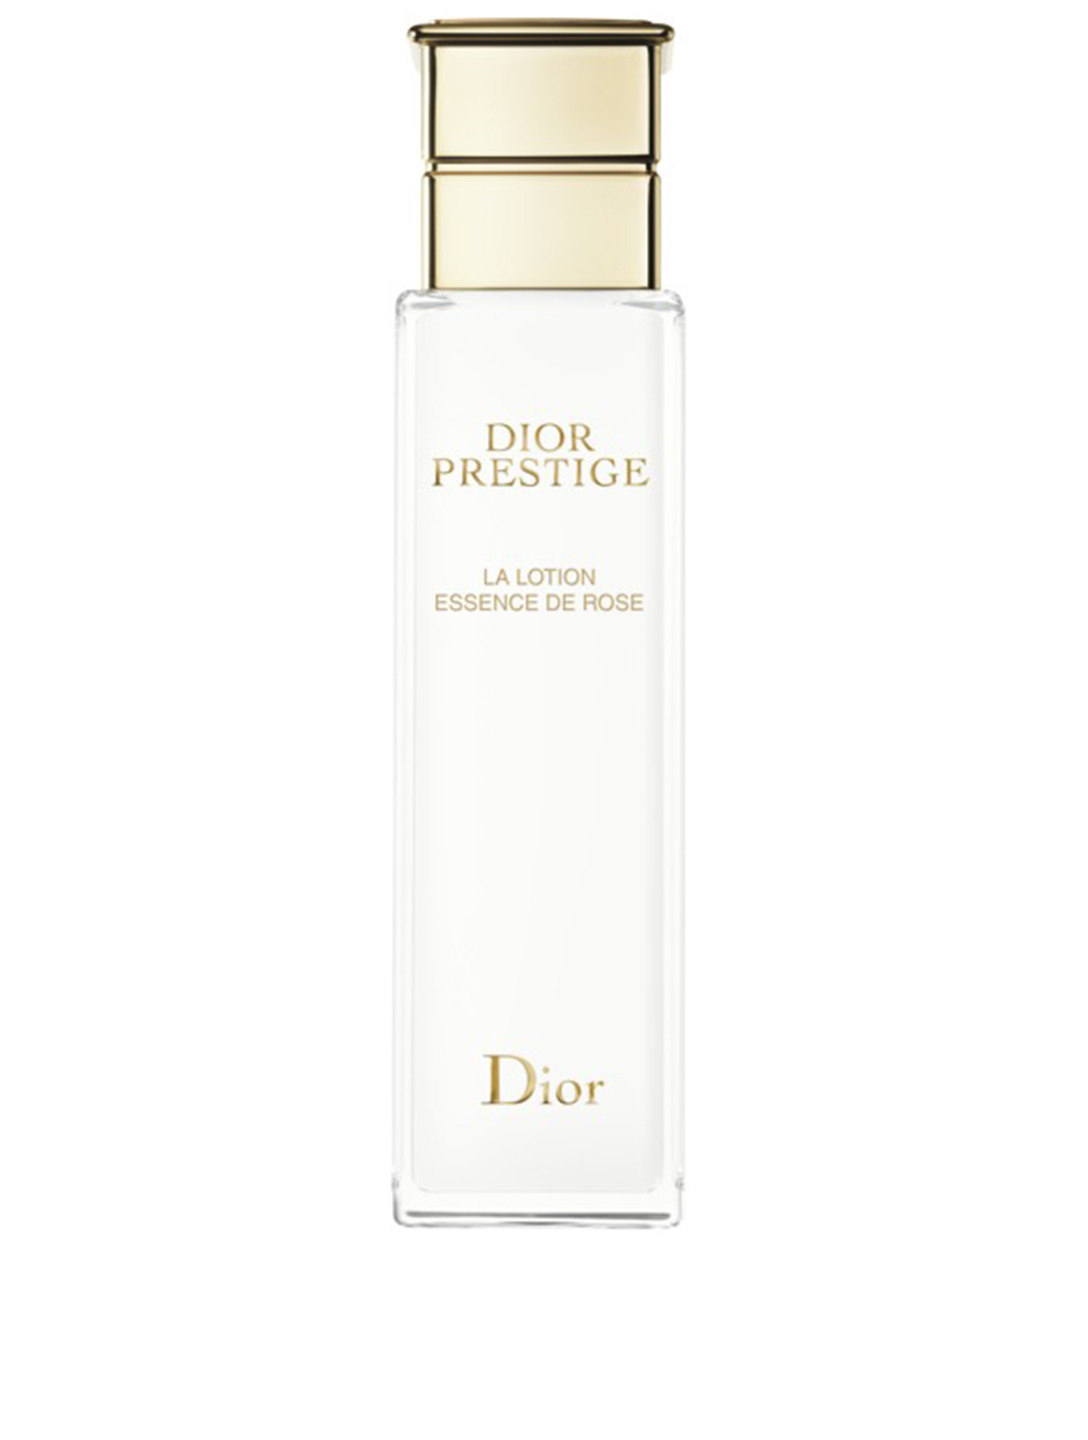 DIOR La Lotion Essence de Rose Dior Prestige Beauté